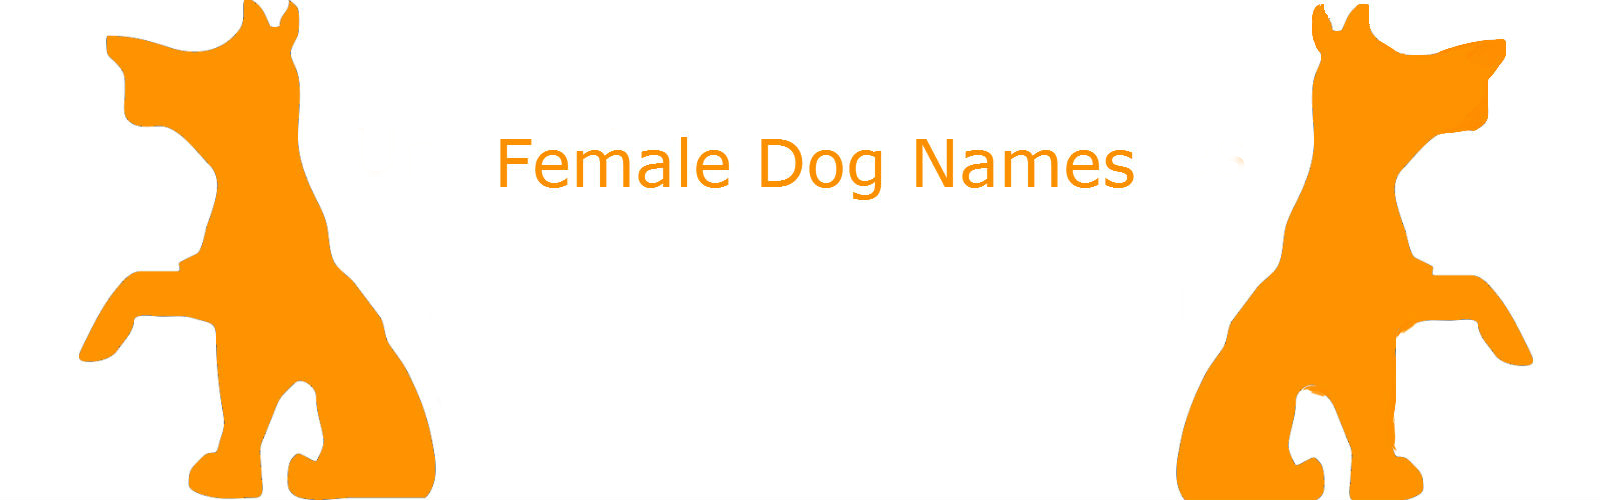 Unique Female Dog Names By Breed